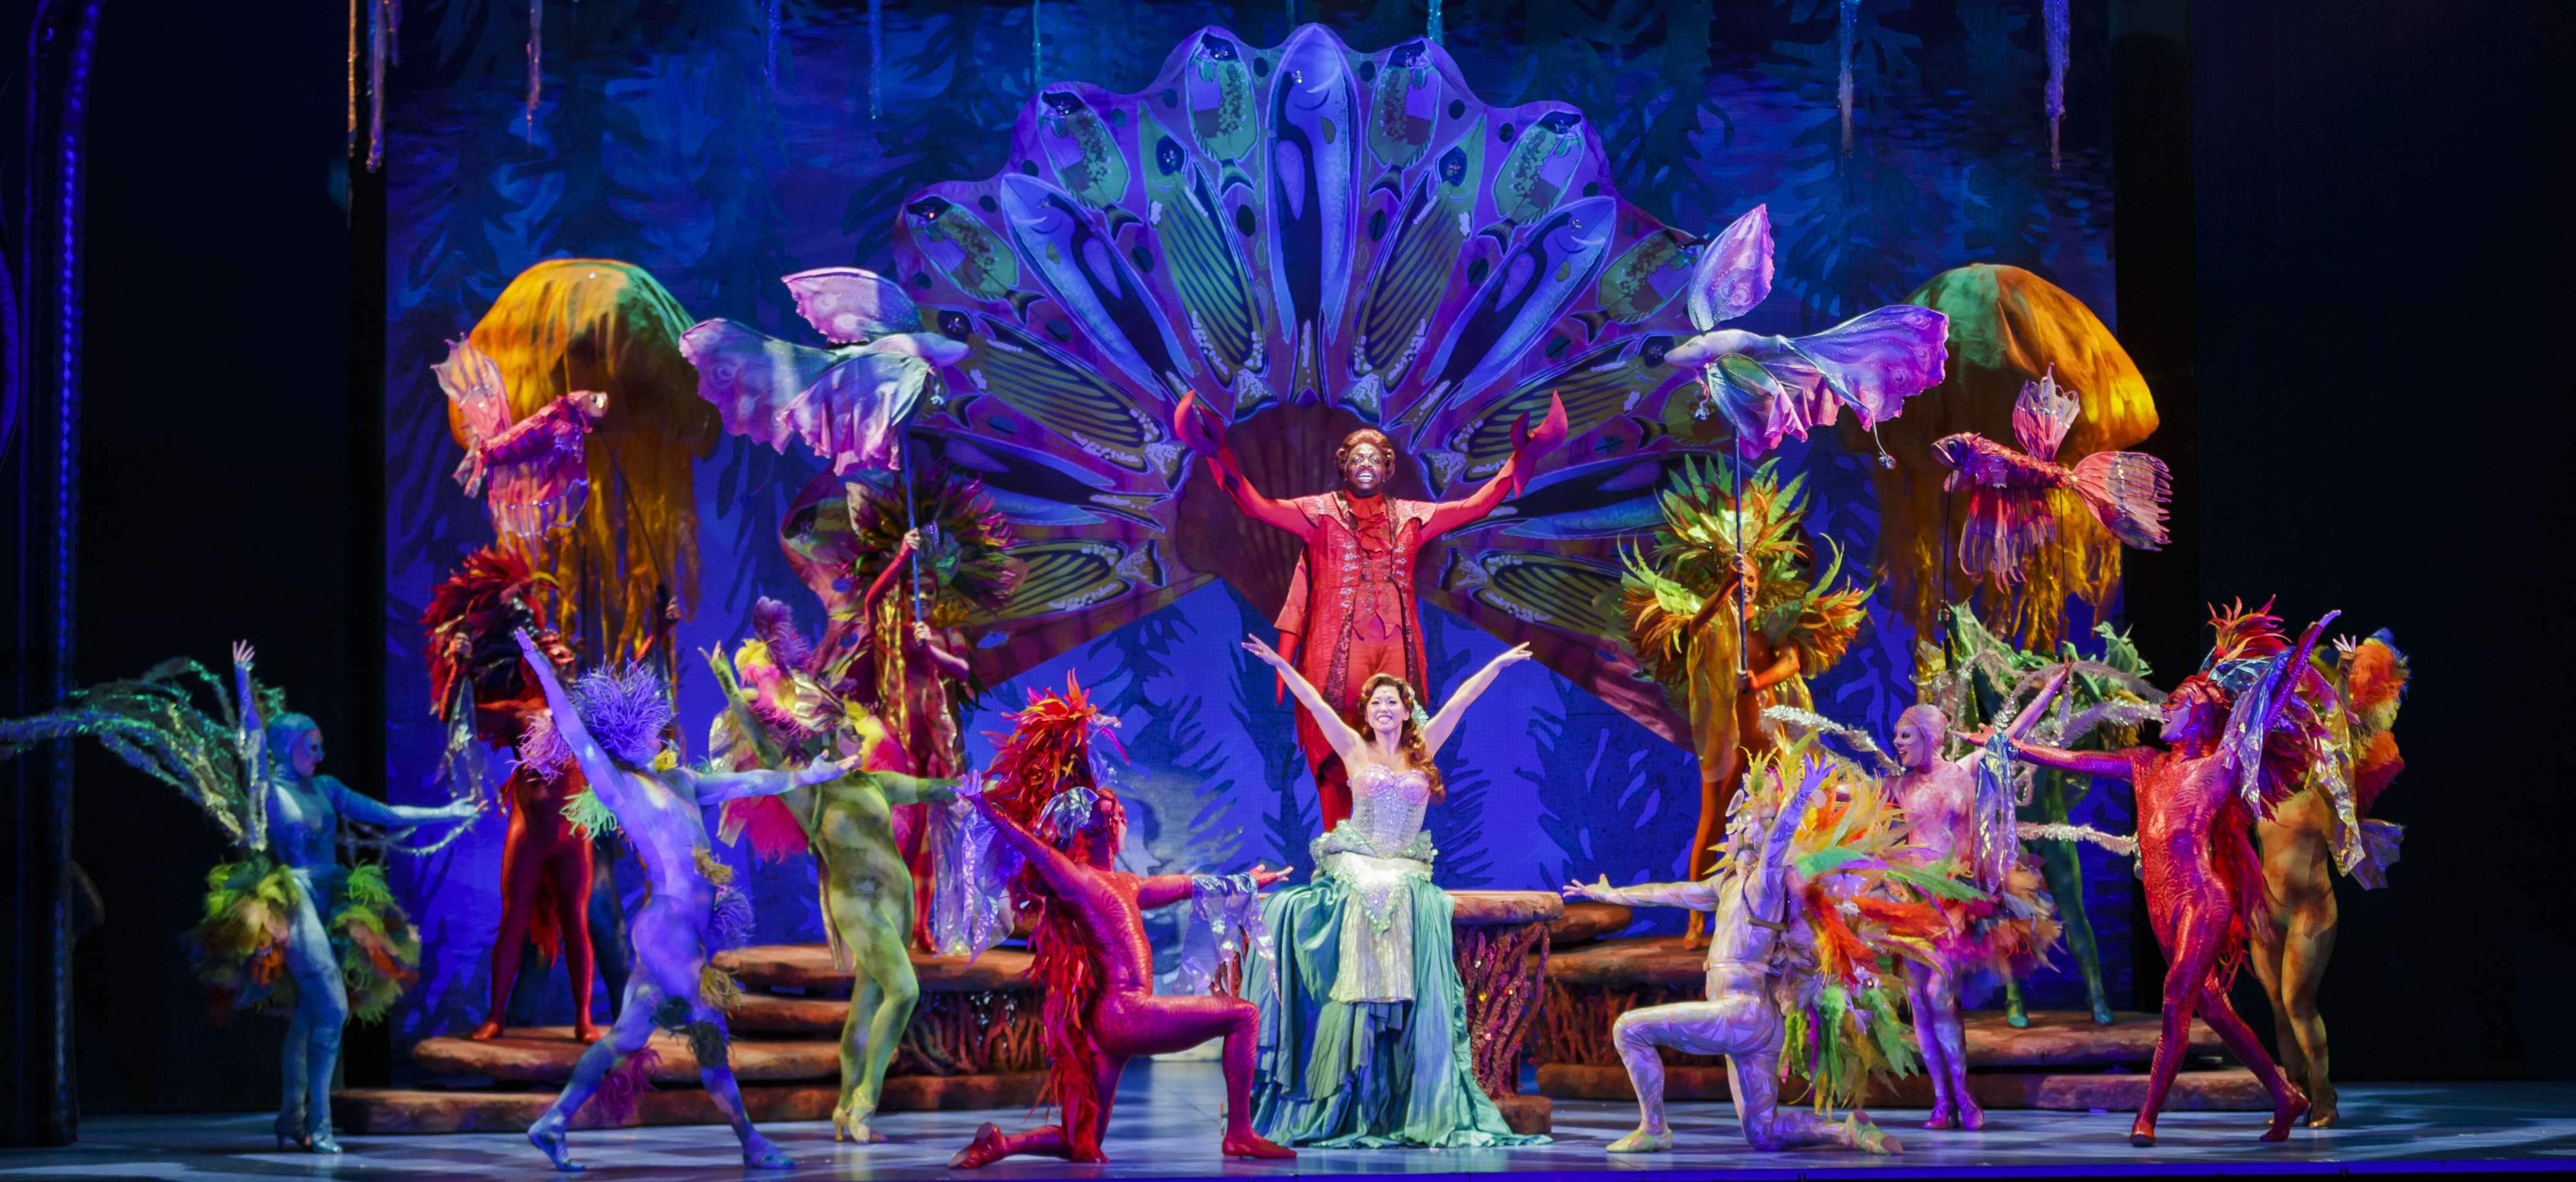 """Under the Sea"" with the Company of The 5th Avenue Theatre's production of Disney's The Little Mermaid. Photo by Mark Kitaoka."